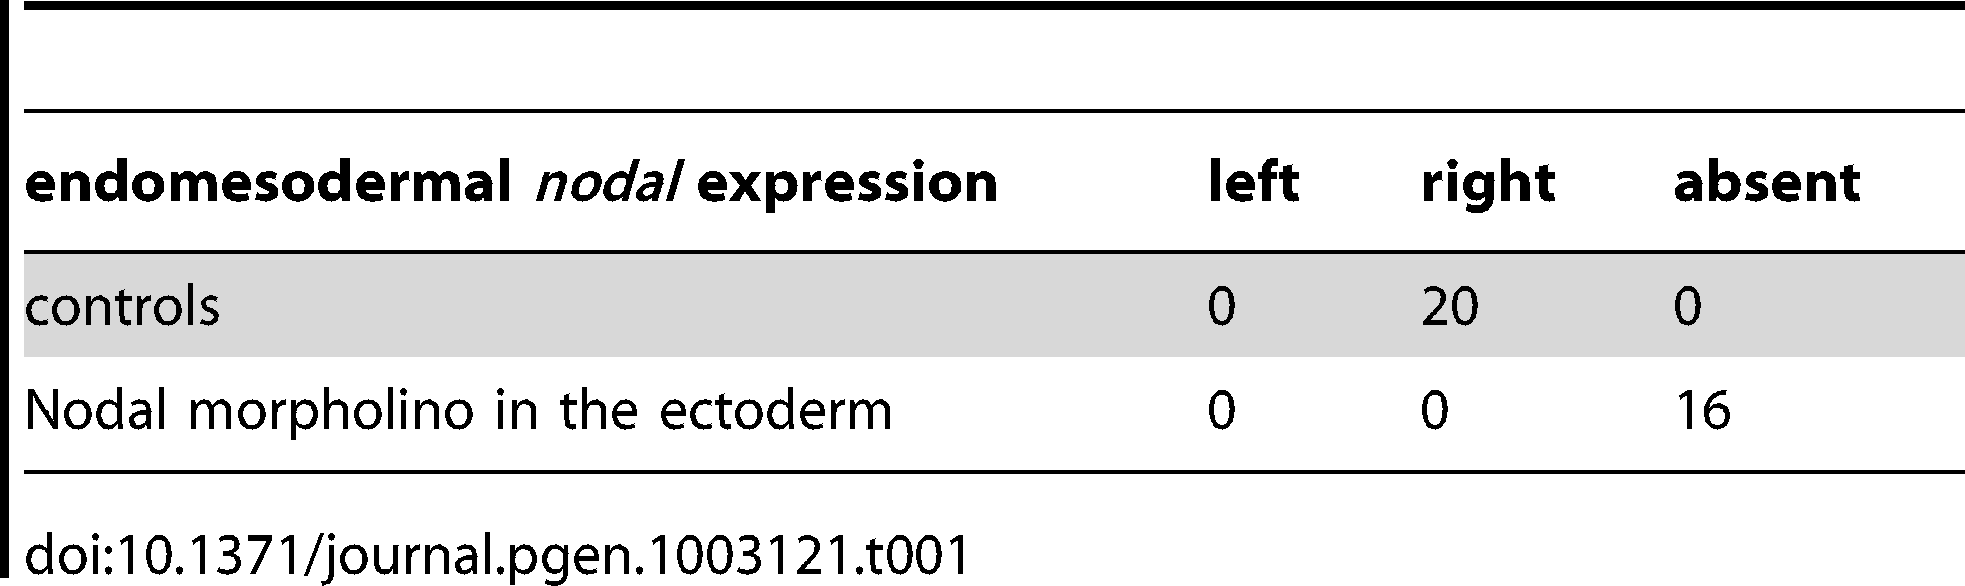 Expression of <i>nodal</i> in the endomesoderm following inhibition of Nodal signaling in the ectoderm.